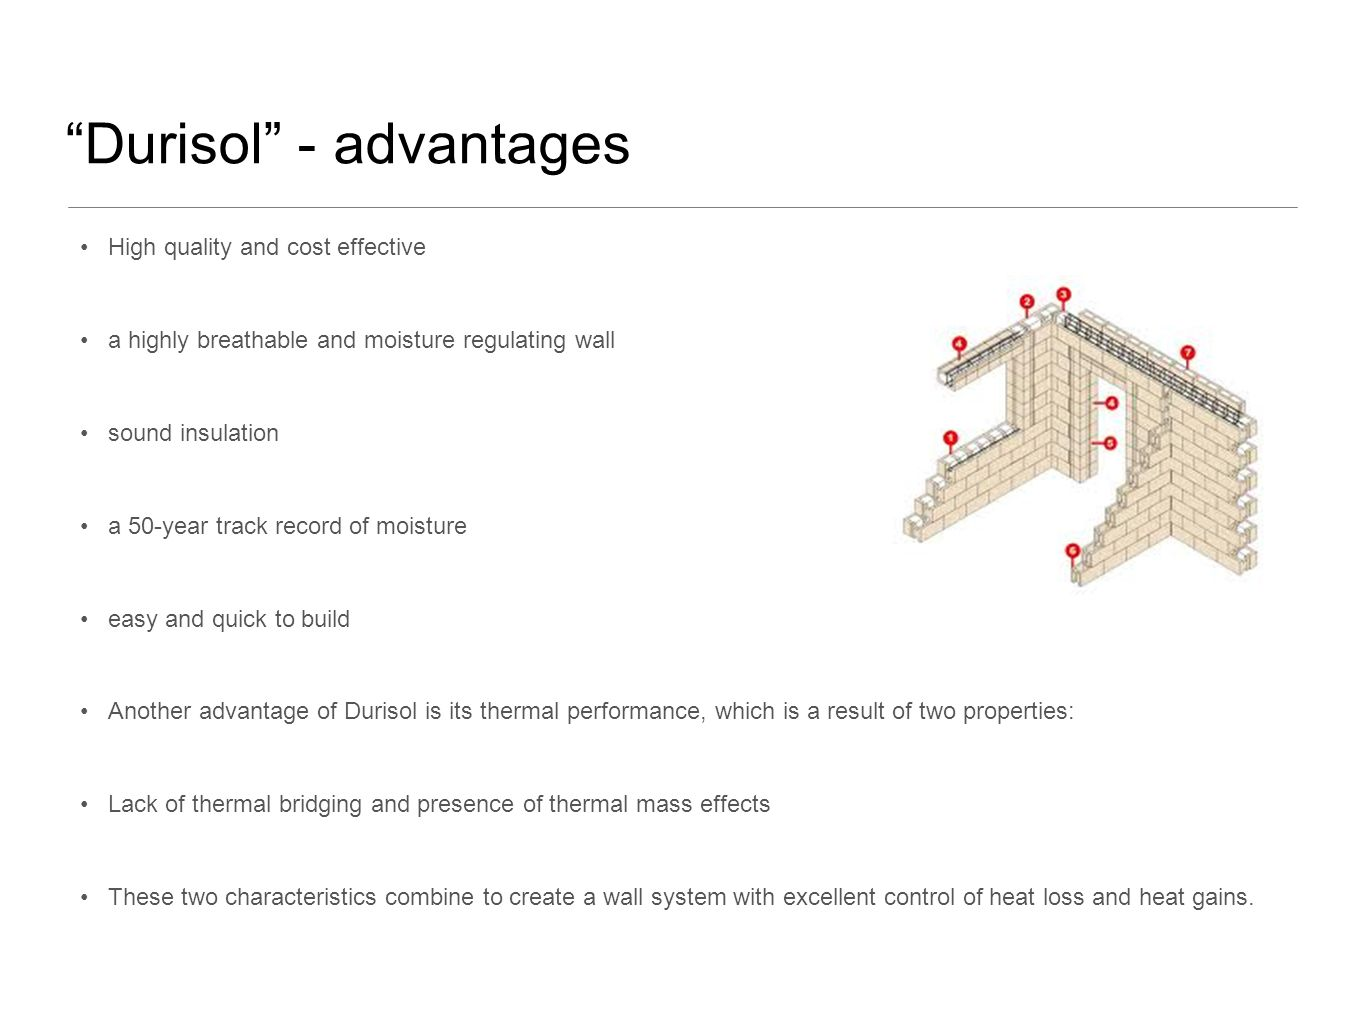 Durisol - advantages High quality and cost effective a highly breathable and moisture regulating wall sound insulation a 50-year track record of moist